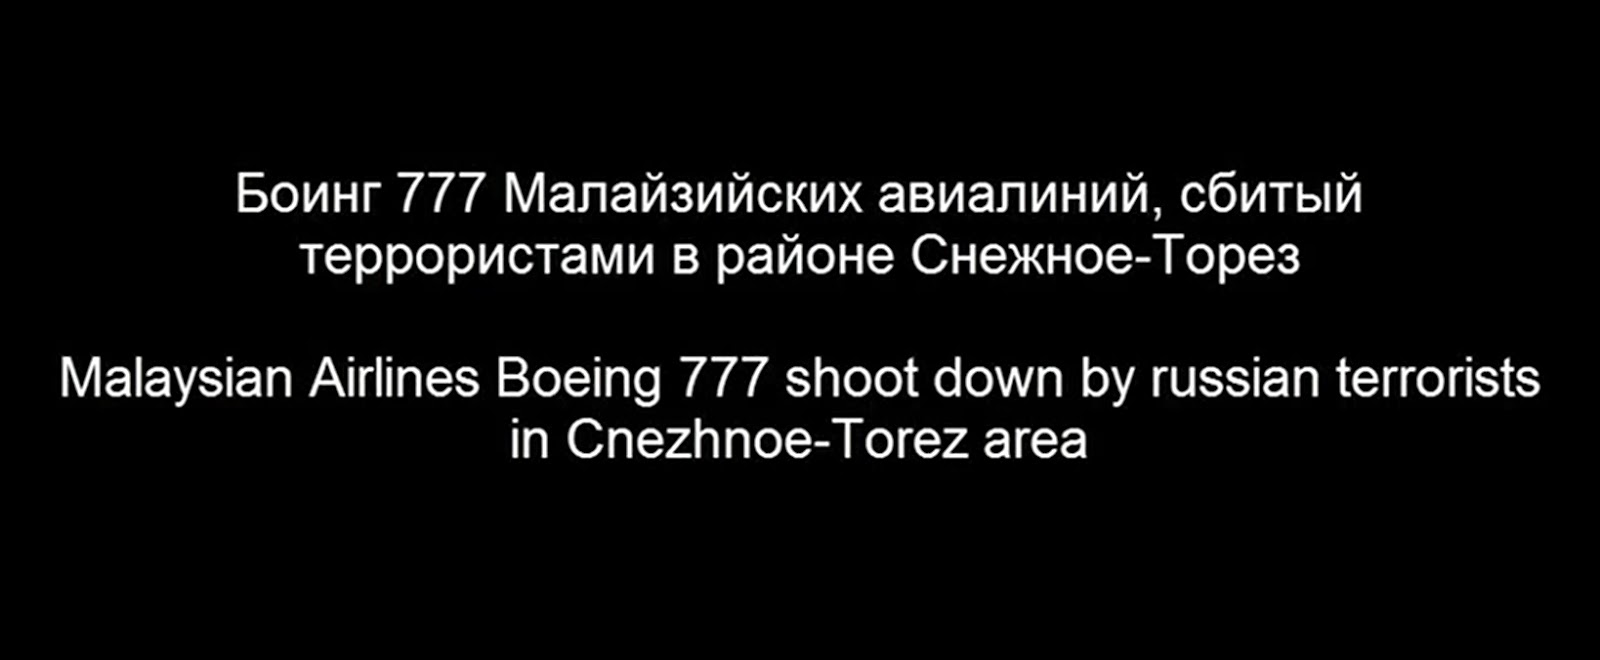 Boeing 777 shoot down by russian